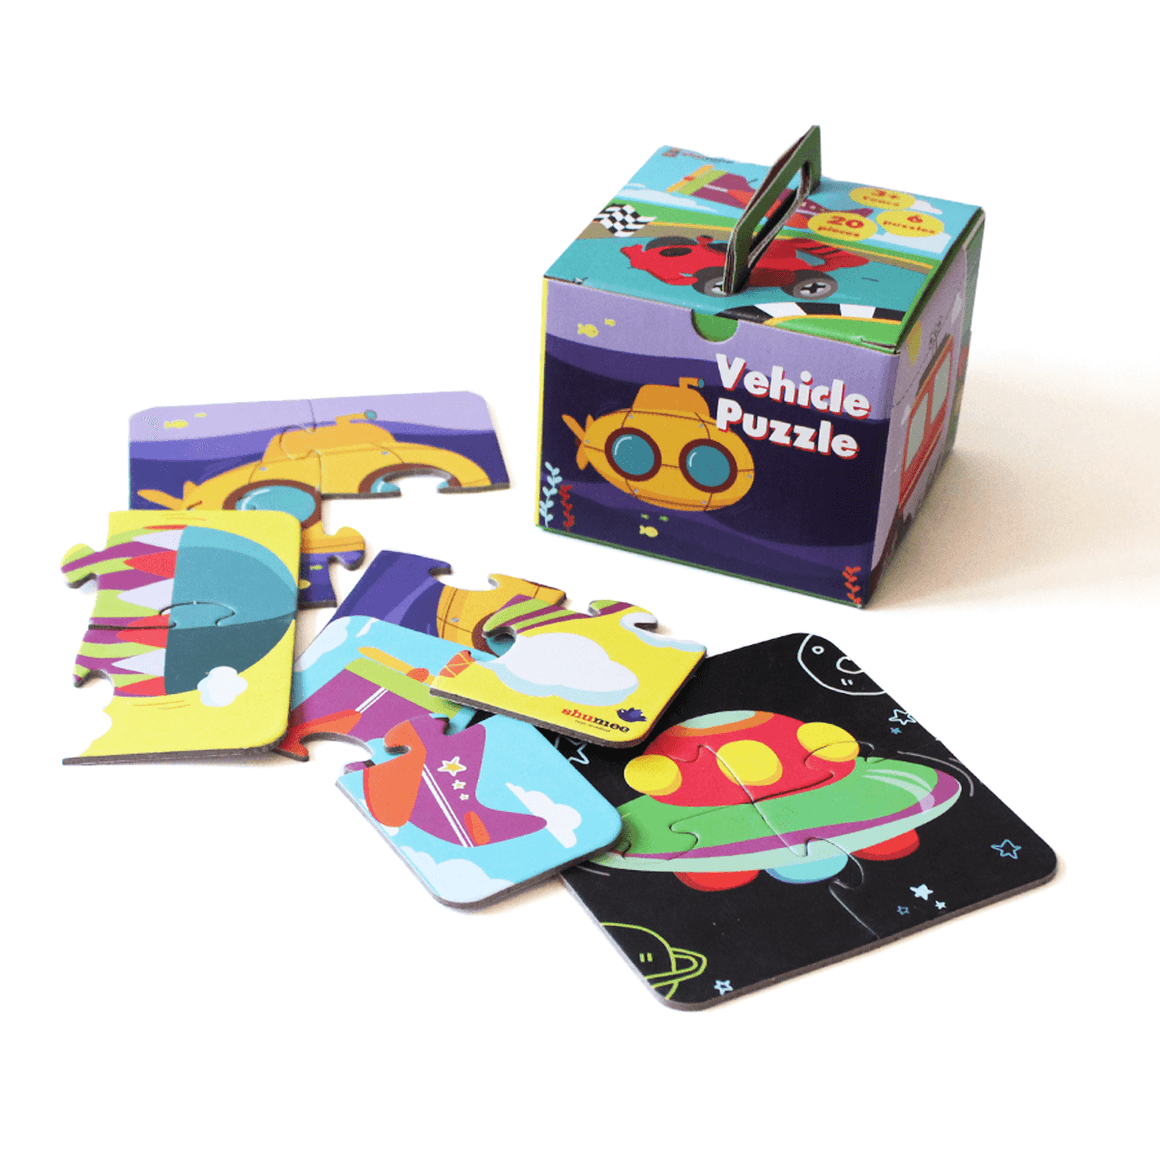 Vehicle puzzle - set of 6 puzzles